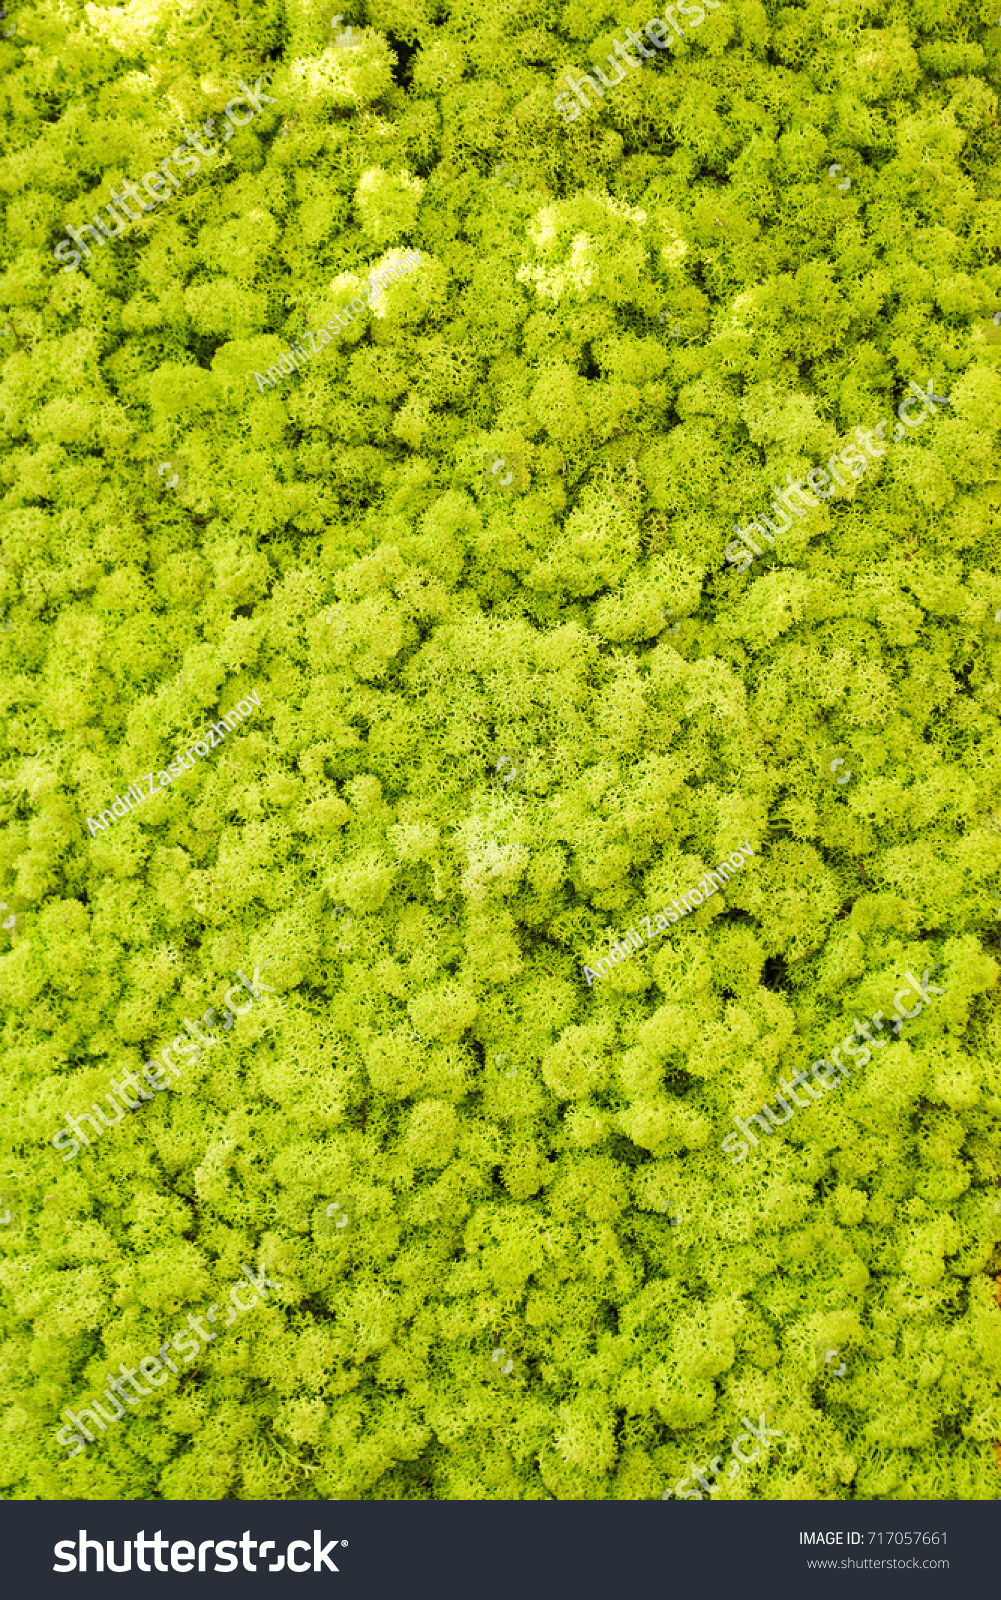 Reindeer Moss Wall Green Wall Decoration Stock Photo (Royalty Free ...